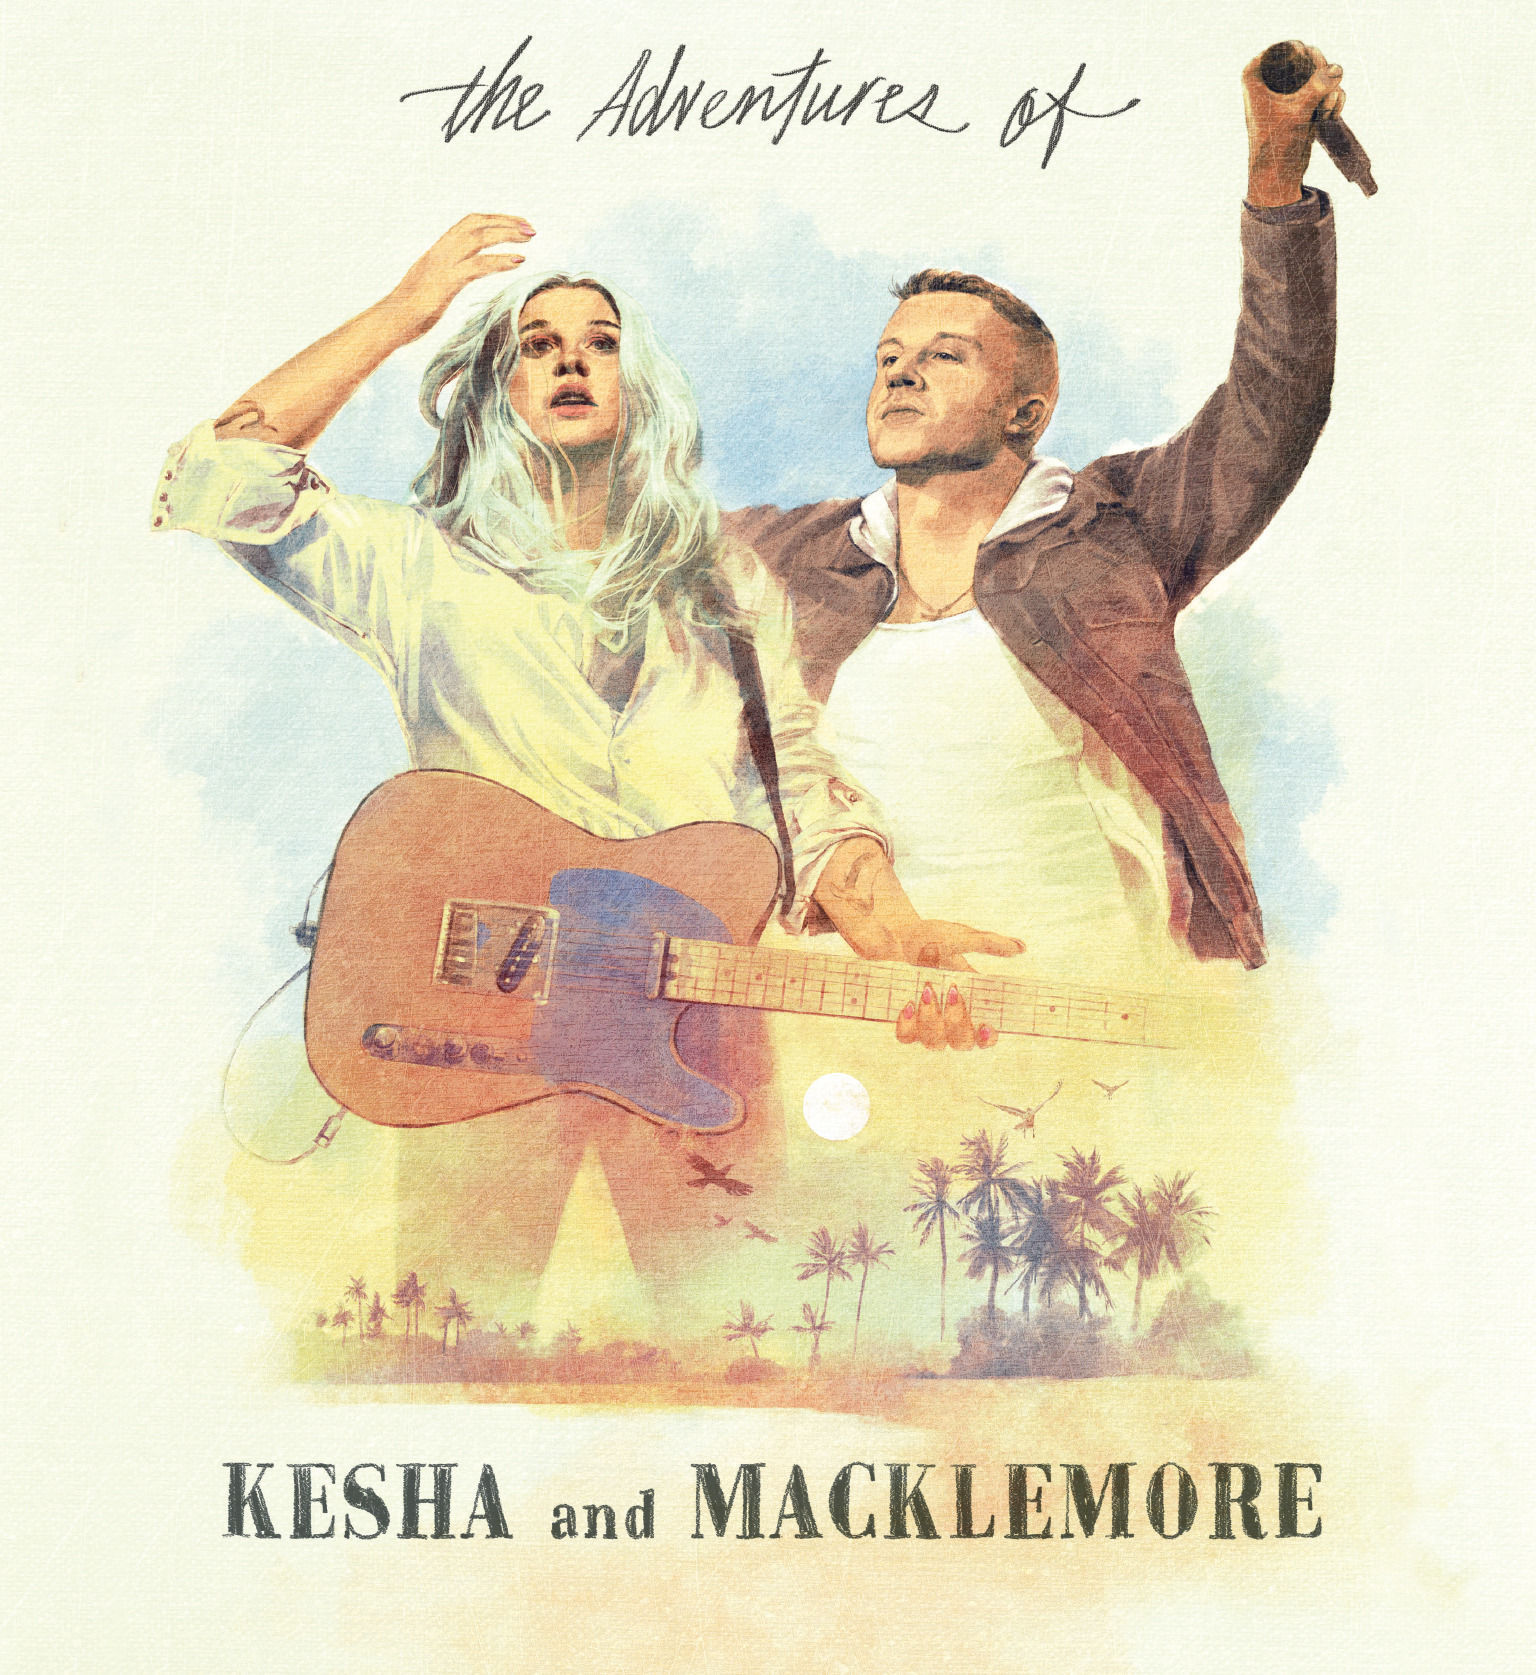 Kesha, Macklemore tour sets date for Jones Beach Theater show